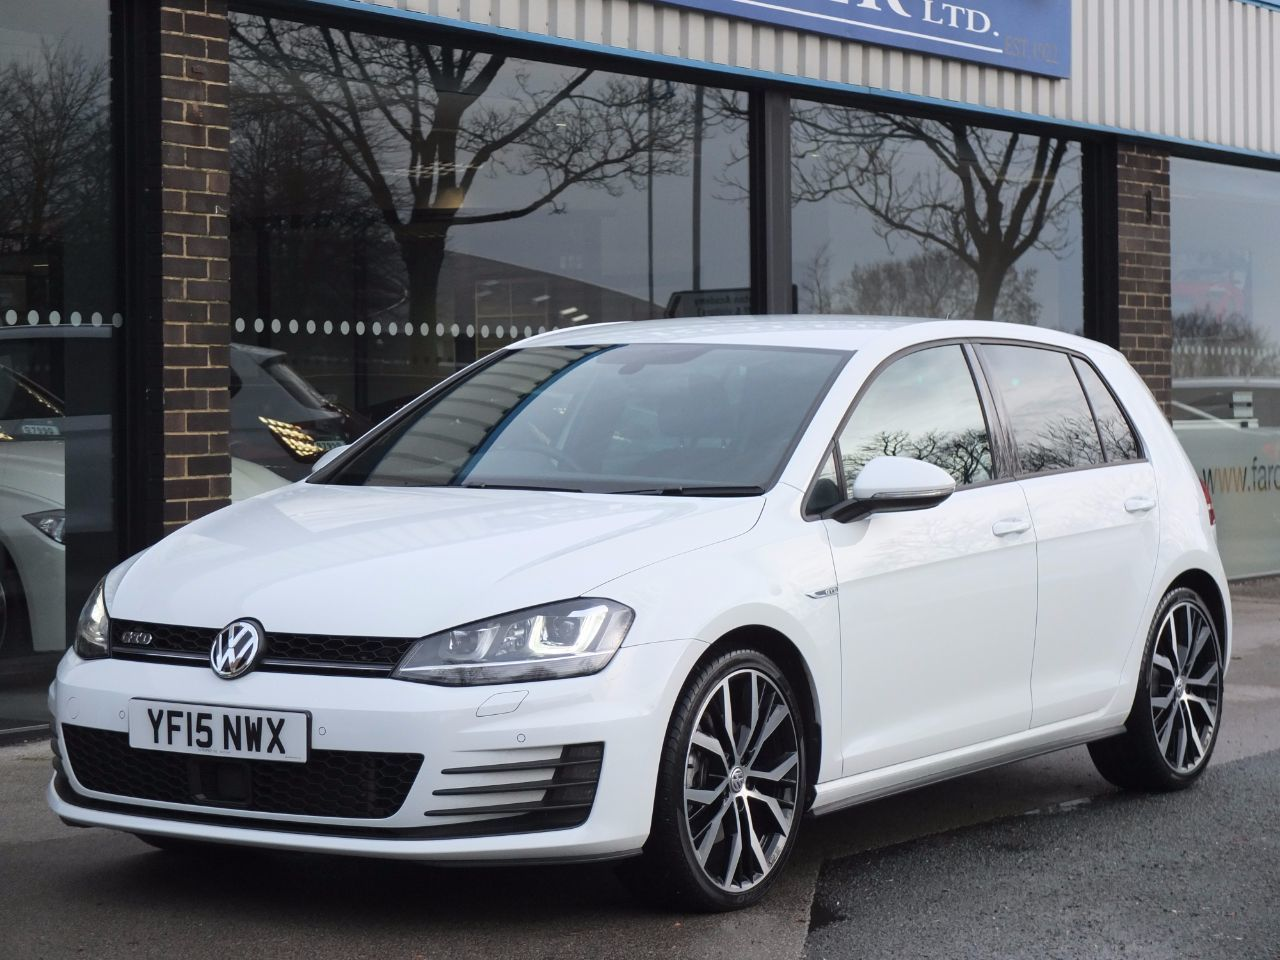 Volkswagen Golf 2.0 TDI GTD 5 Door DSG (Discover Navigation and 19 inch Wheels) Hatchback Diesel Pure WhiteVolkswagen Golf 2.0 TDI GTD 5 Door DSG (Discover Navigation and 19 inch Wheels) Hatchback Diesel Pure White at fa Roper Ltd Bradford